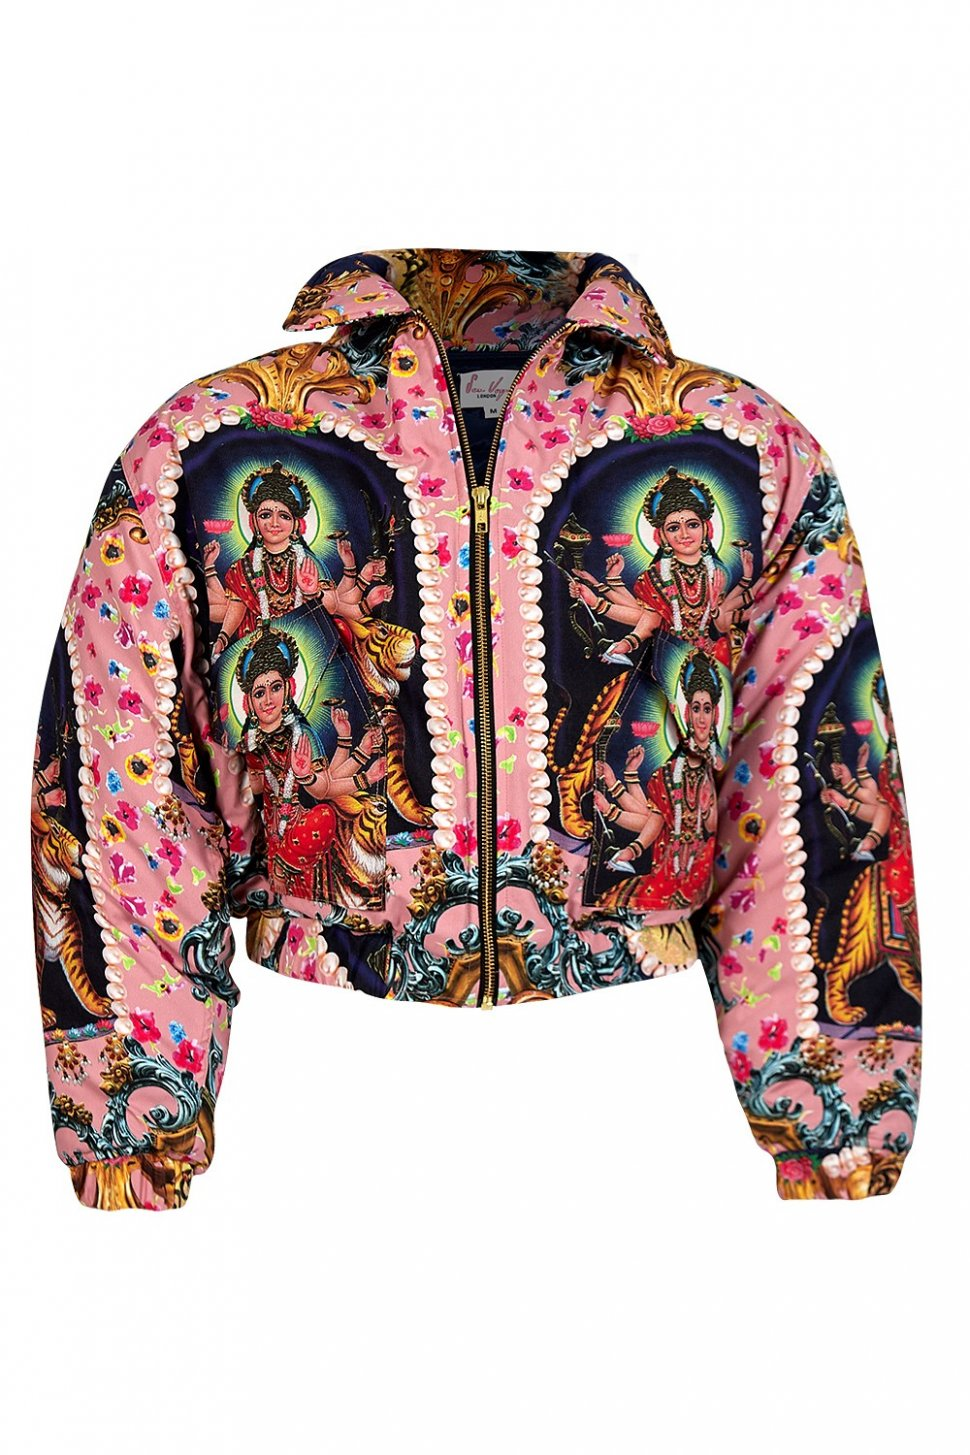 Goddess Print Puffer Jacket. (Suldn.com)